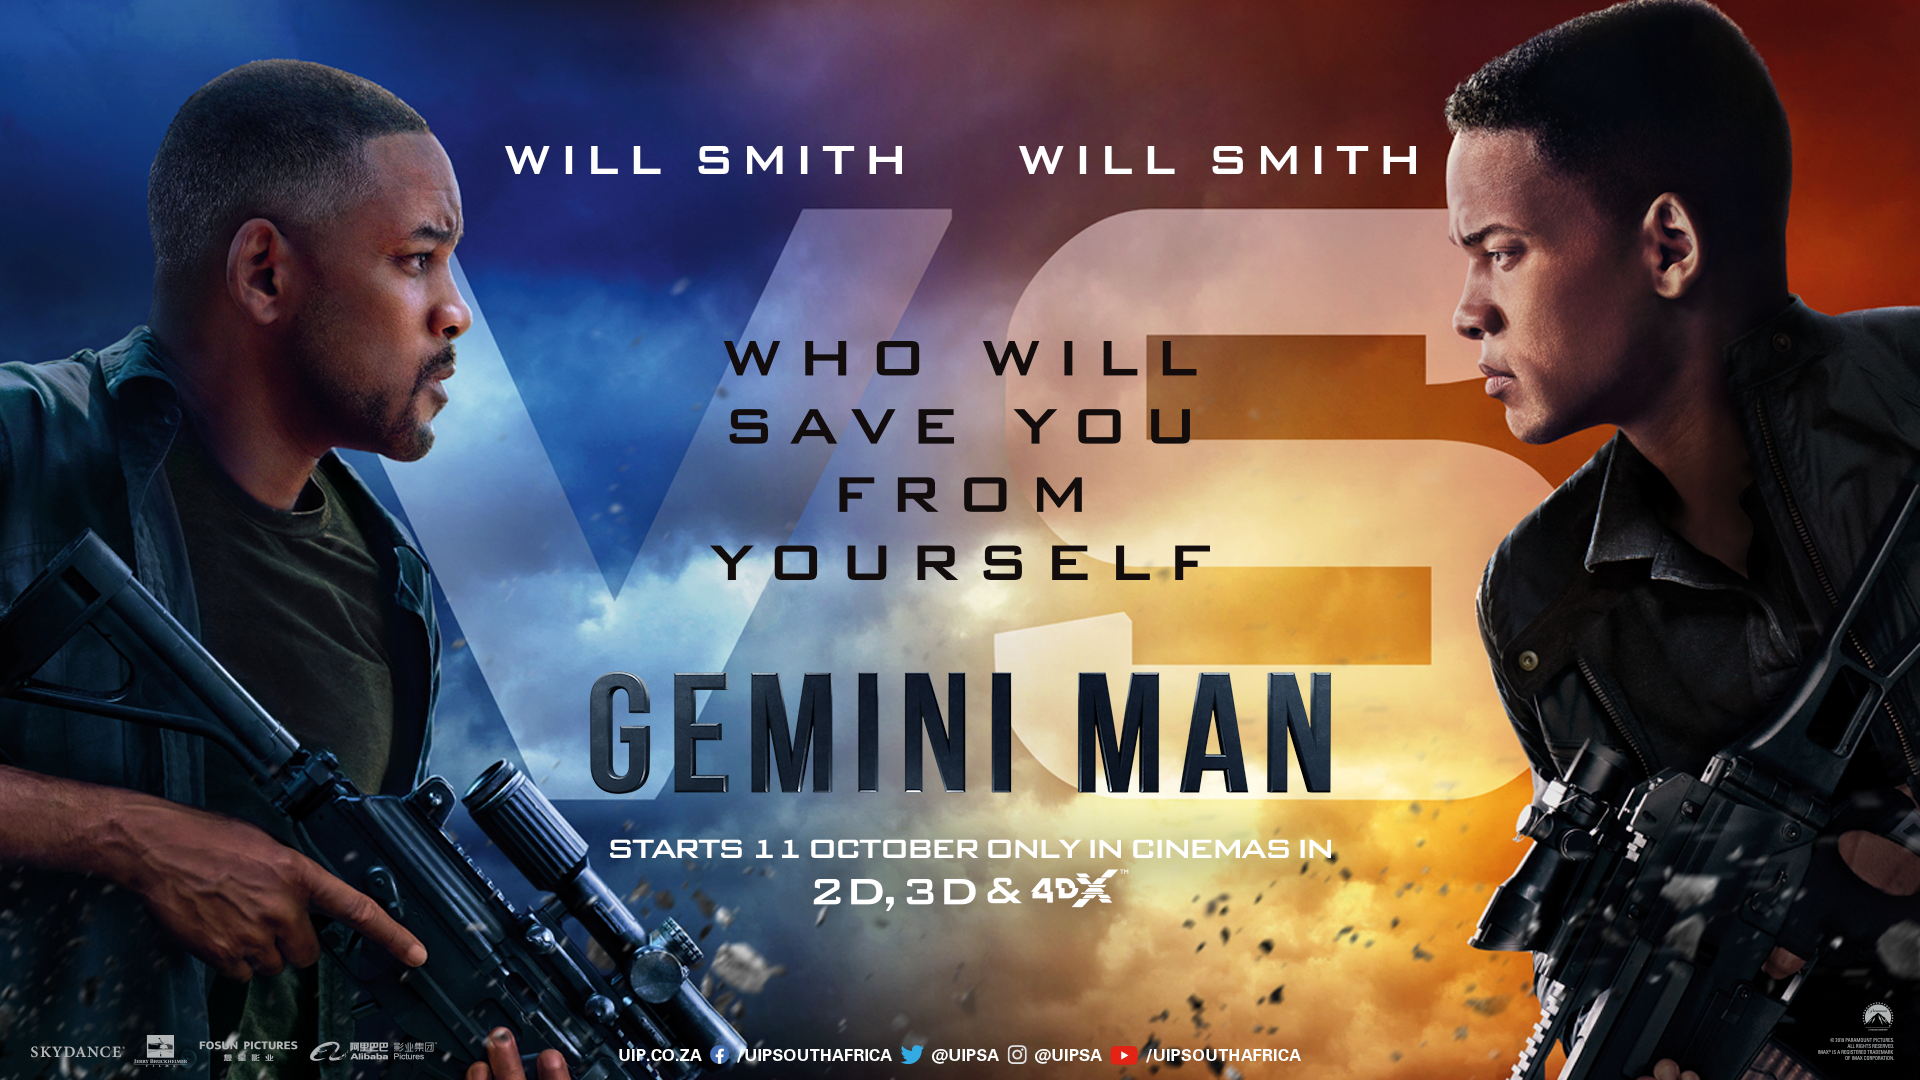 'Gemini Man' - landscape artwork